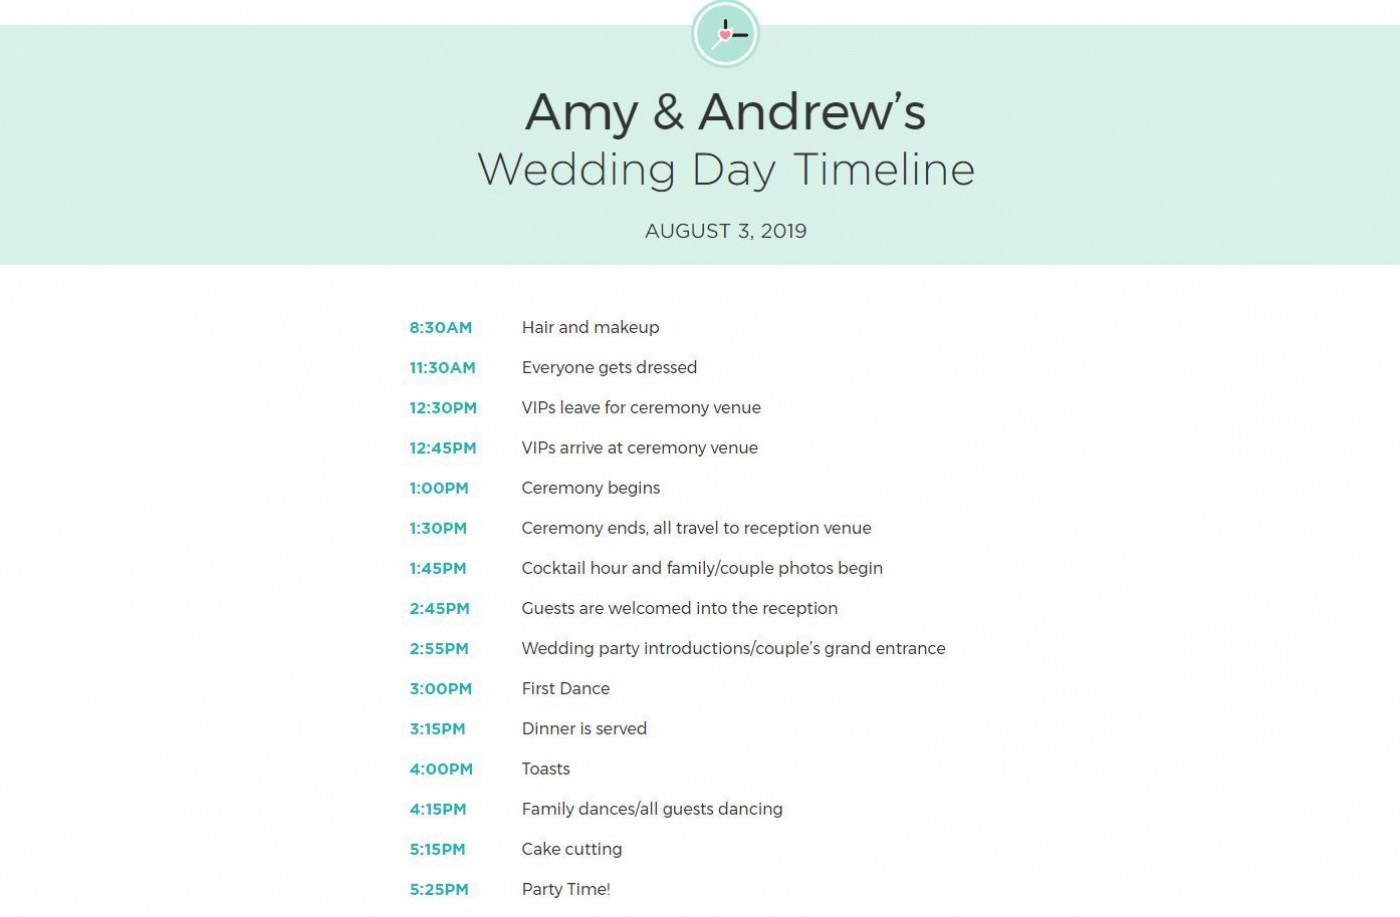 010 Impressive Wedding Timeline For Guest Template Free Photo  Download1400